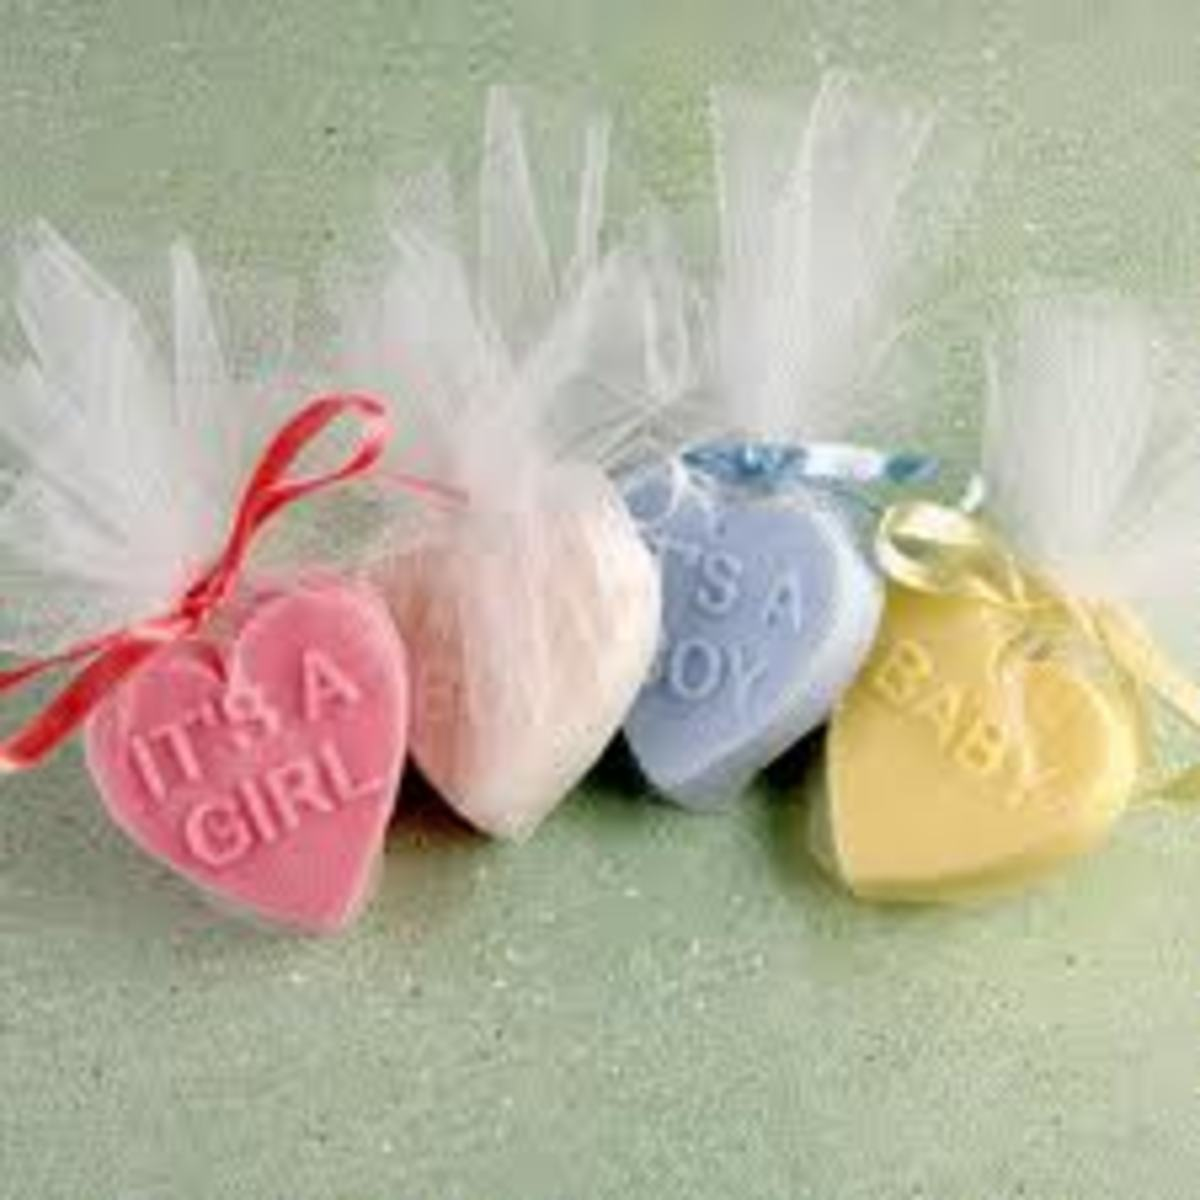 These flavored soap wraps are a great gift for any mother in waiting. It can also be used in decorating.